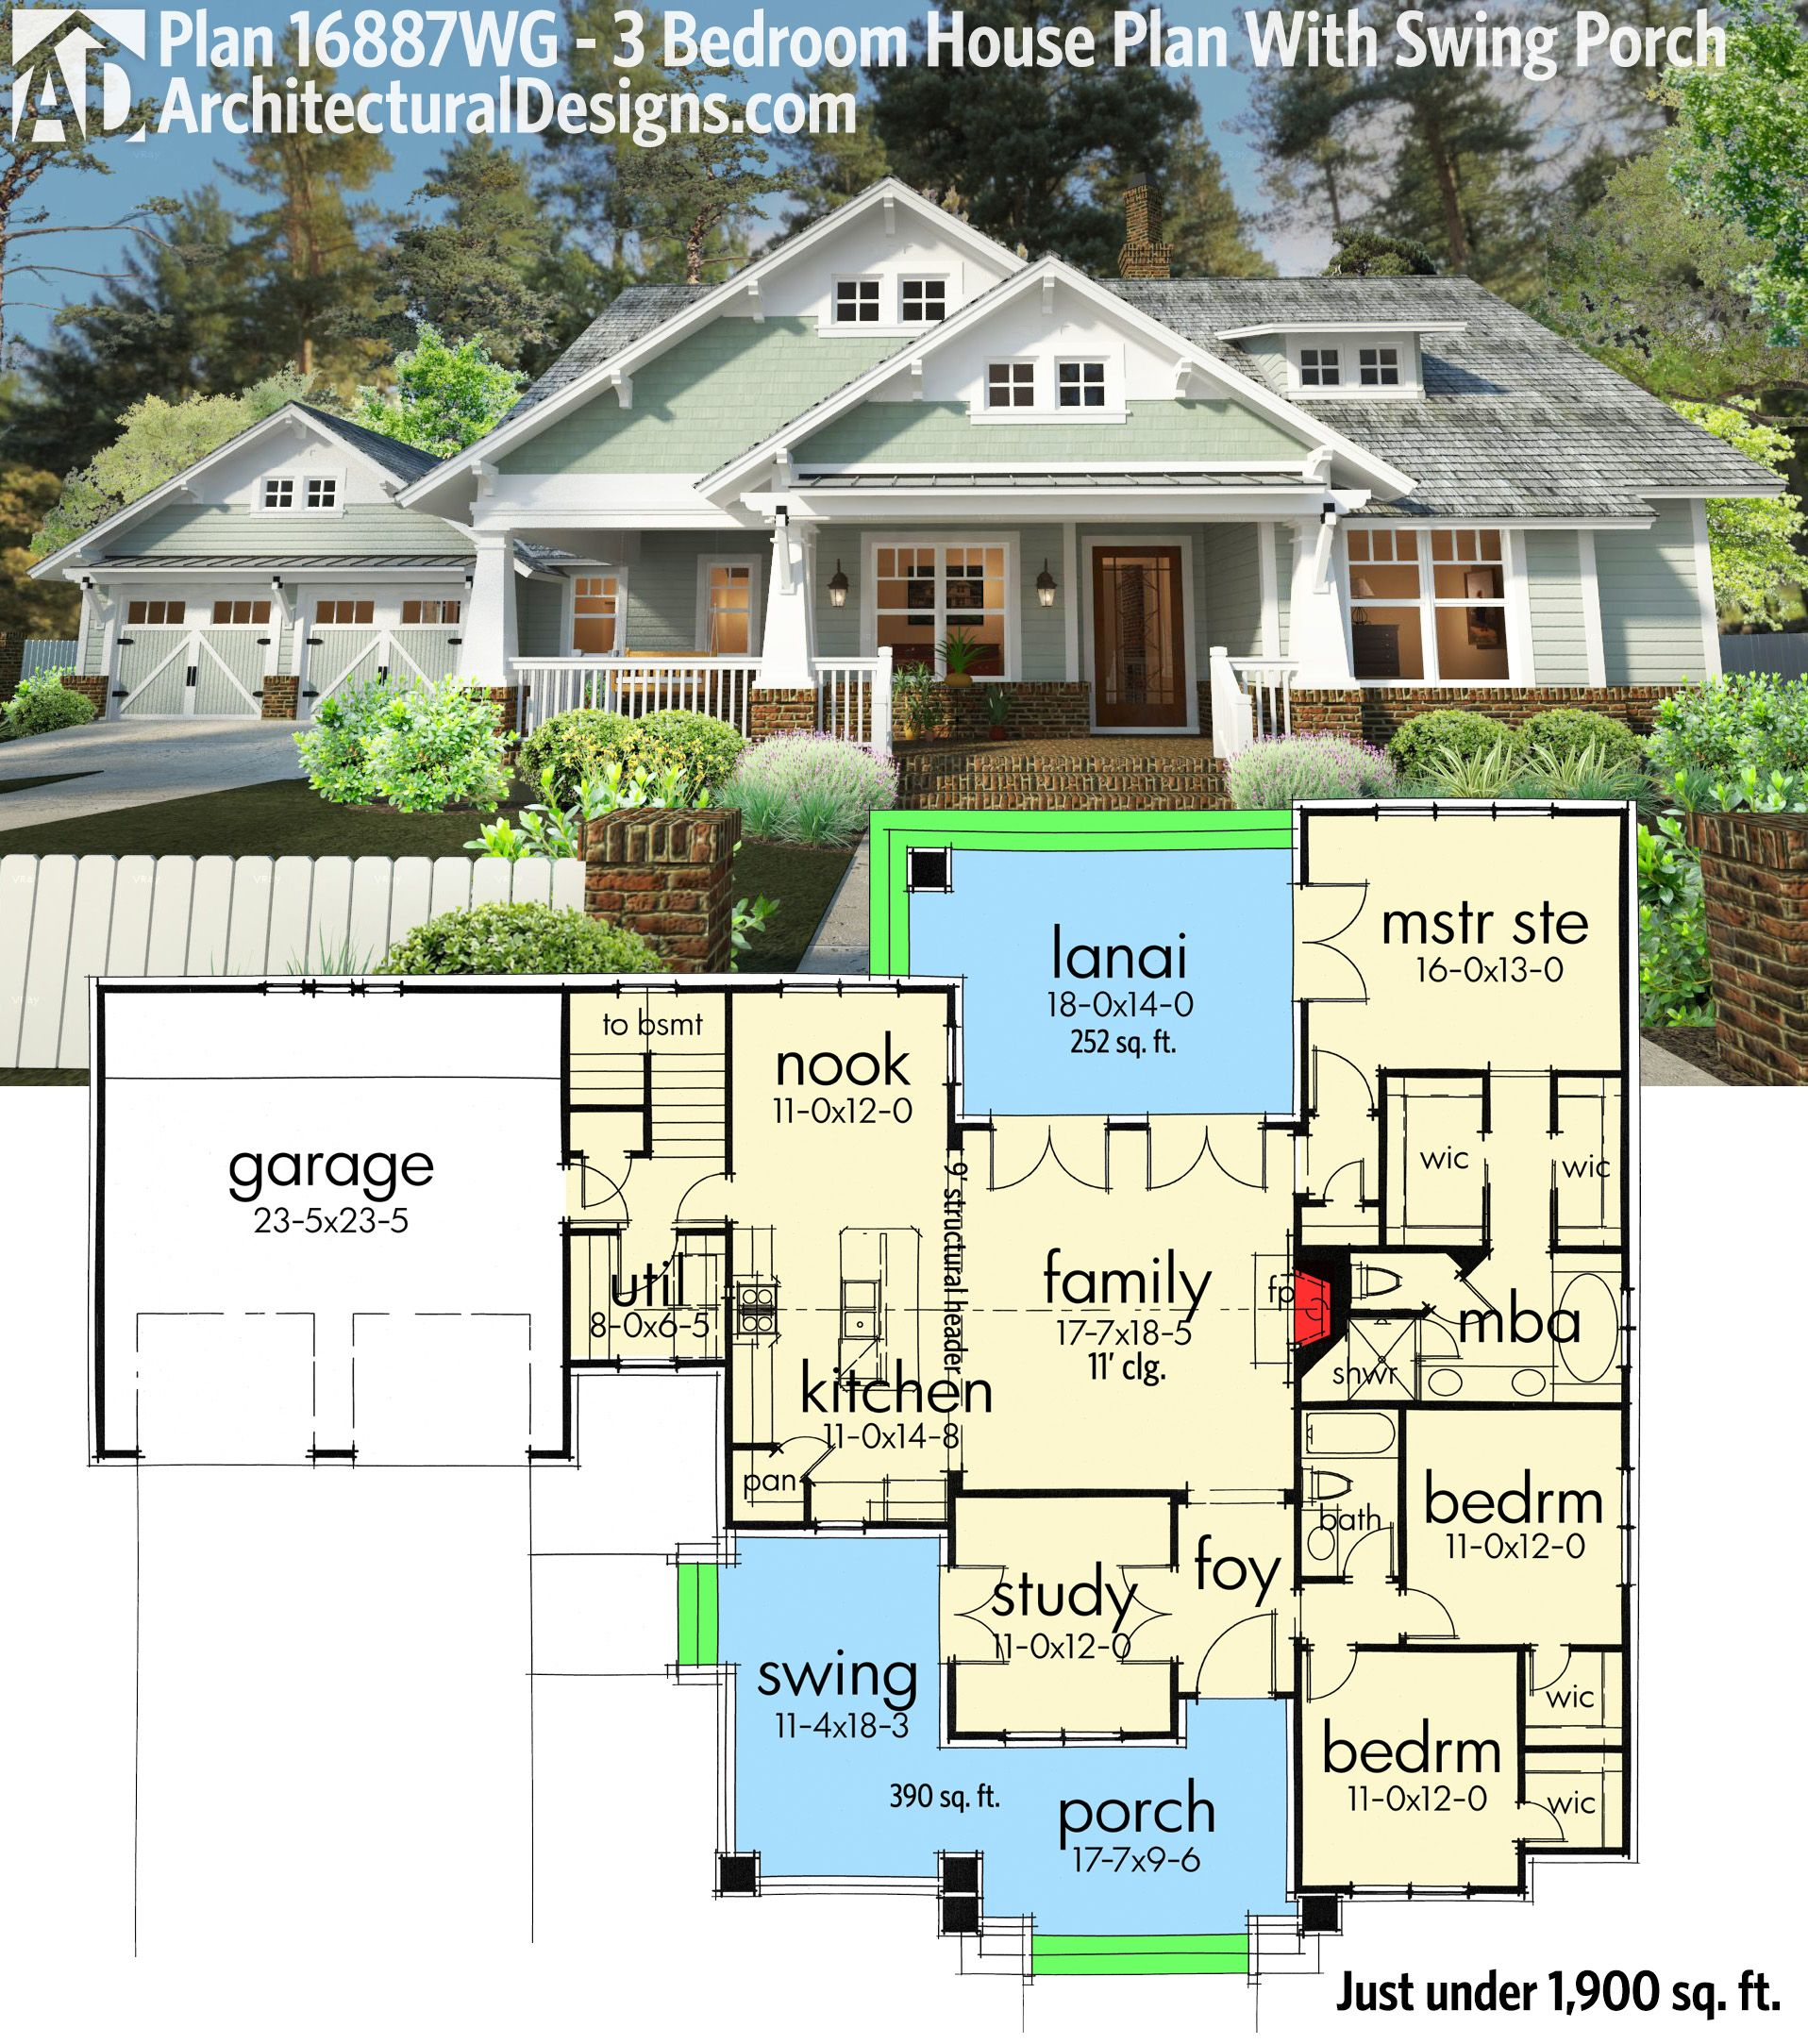 Plan 16887wg 3 Bedroom House Plan With Swing Porch